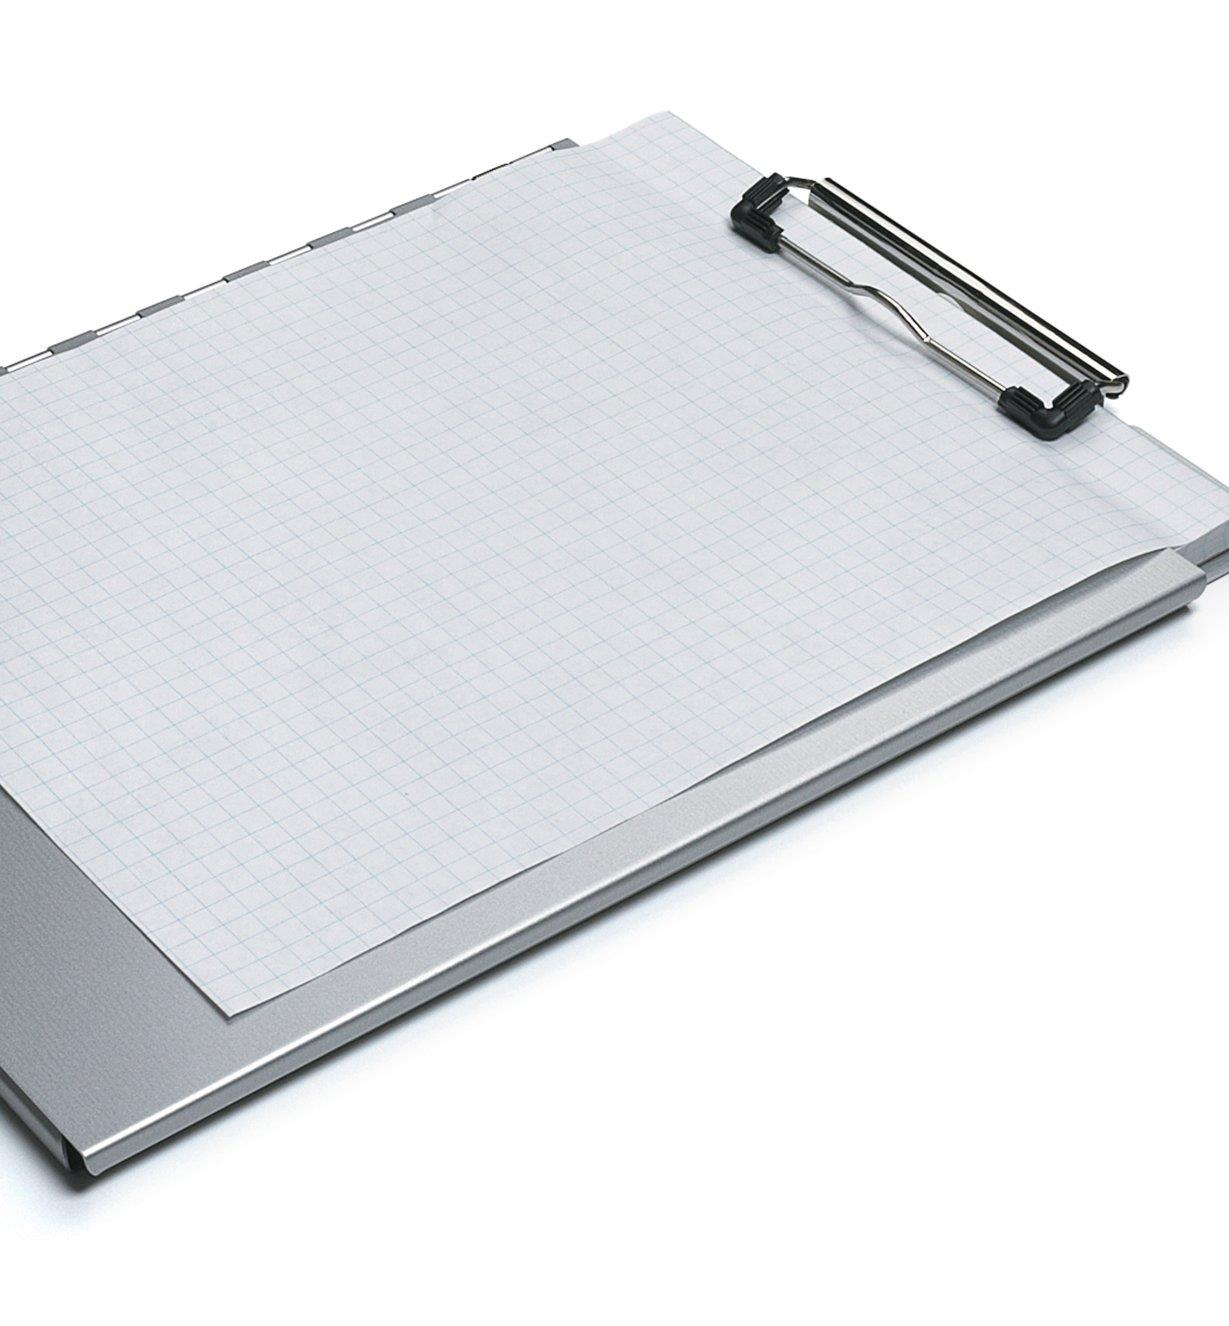 Portfolio Clipboard with pad of graph paper stored inside and single sheet outside